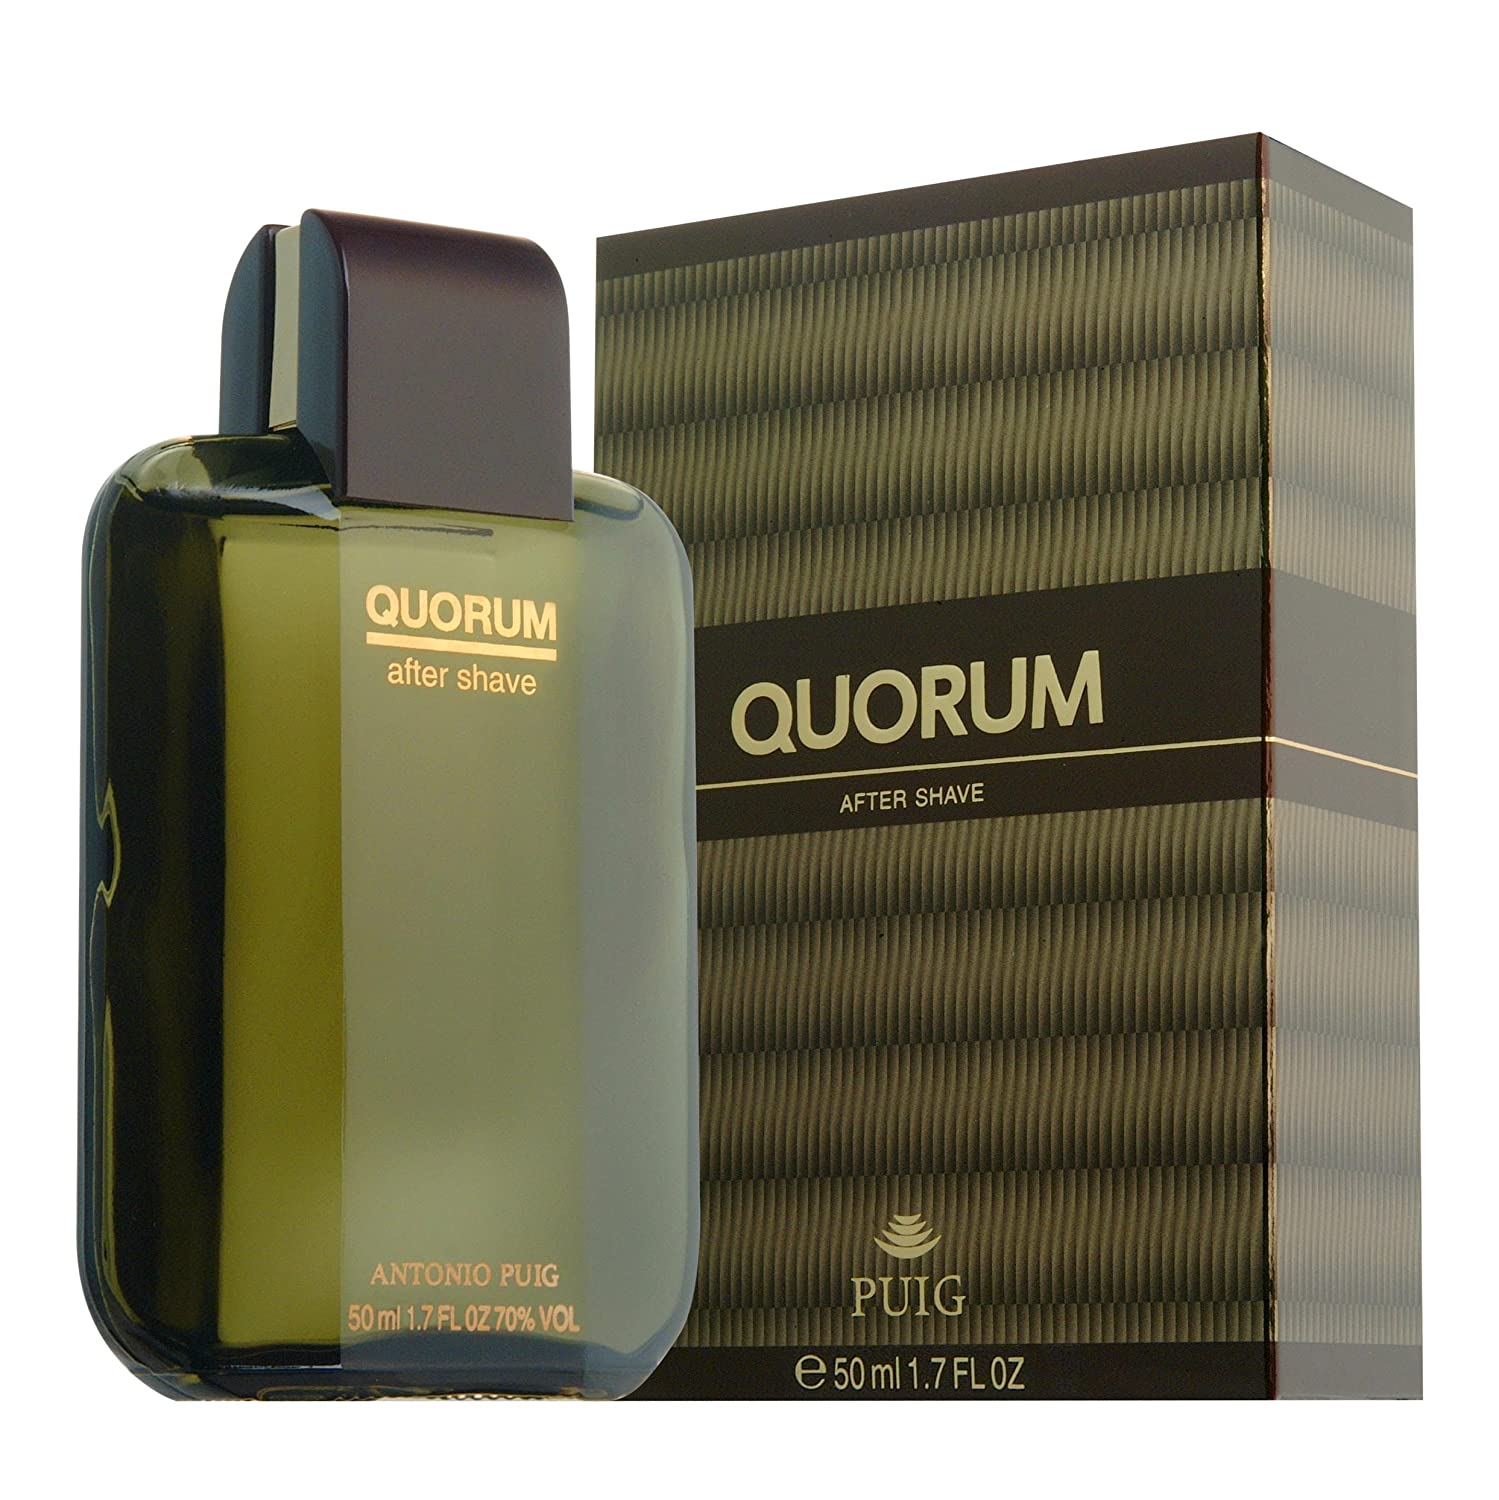 Antonio Puig Quorum After Shave - 50 ml PUIG-413401